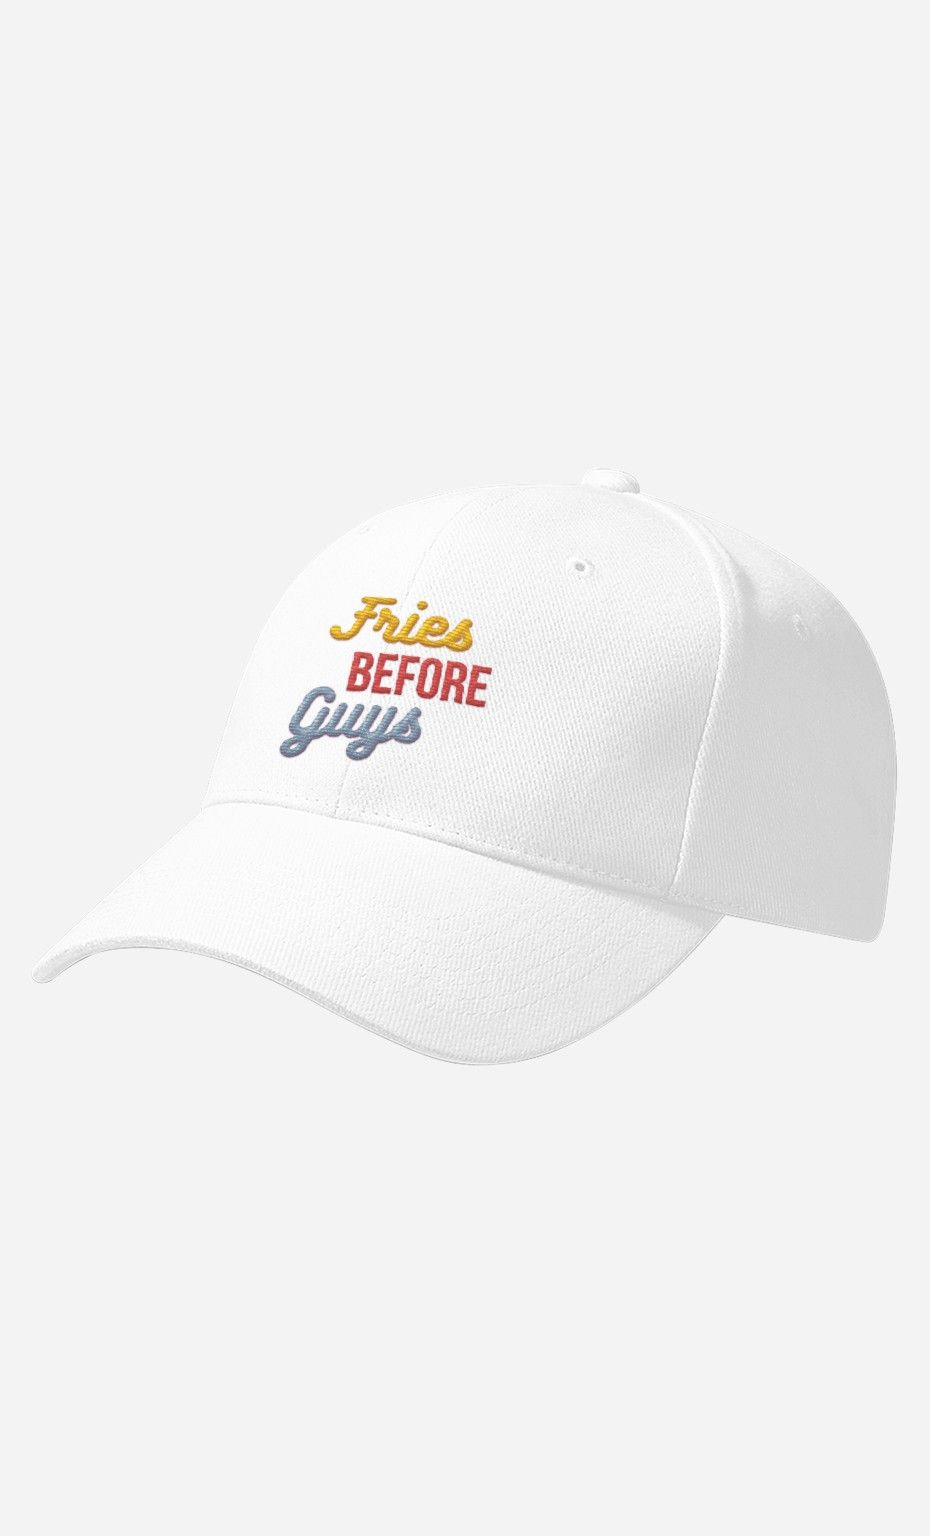 f1284230bfb20 Casquette Fries Before Guys - Wooop.fr Dad Hats